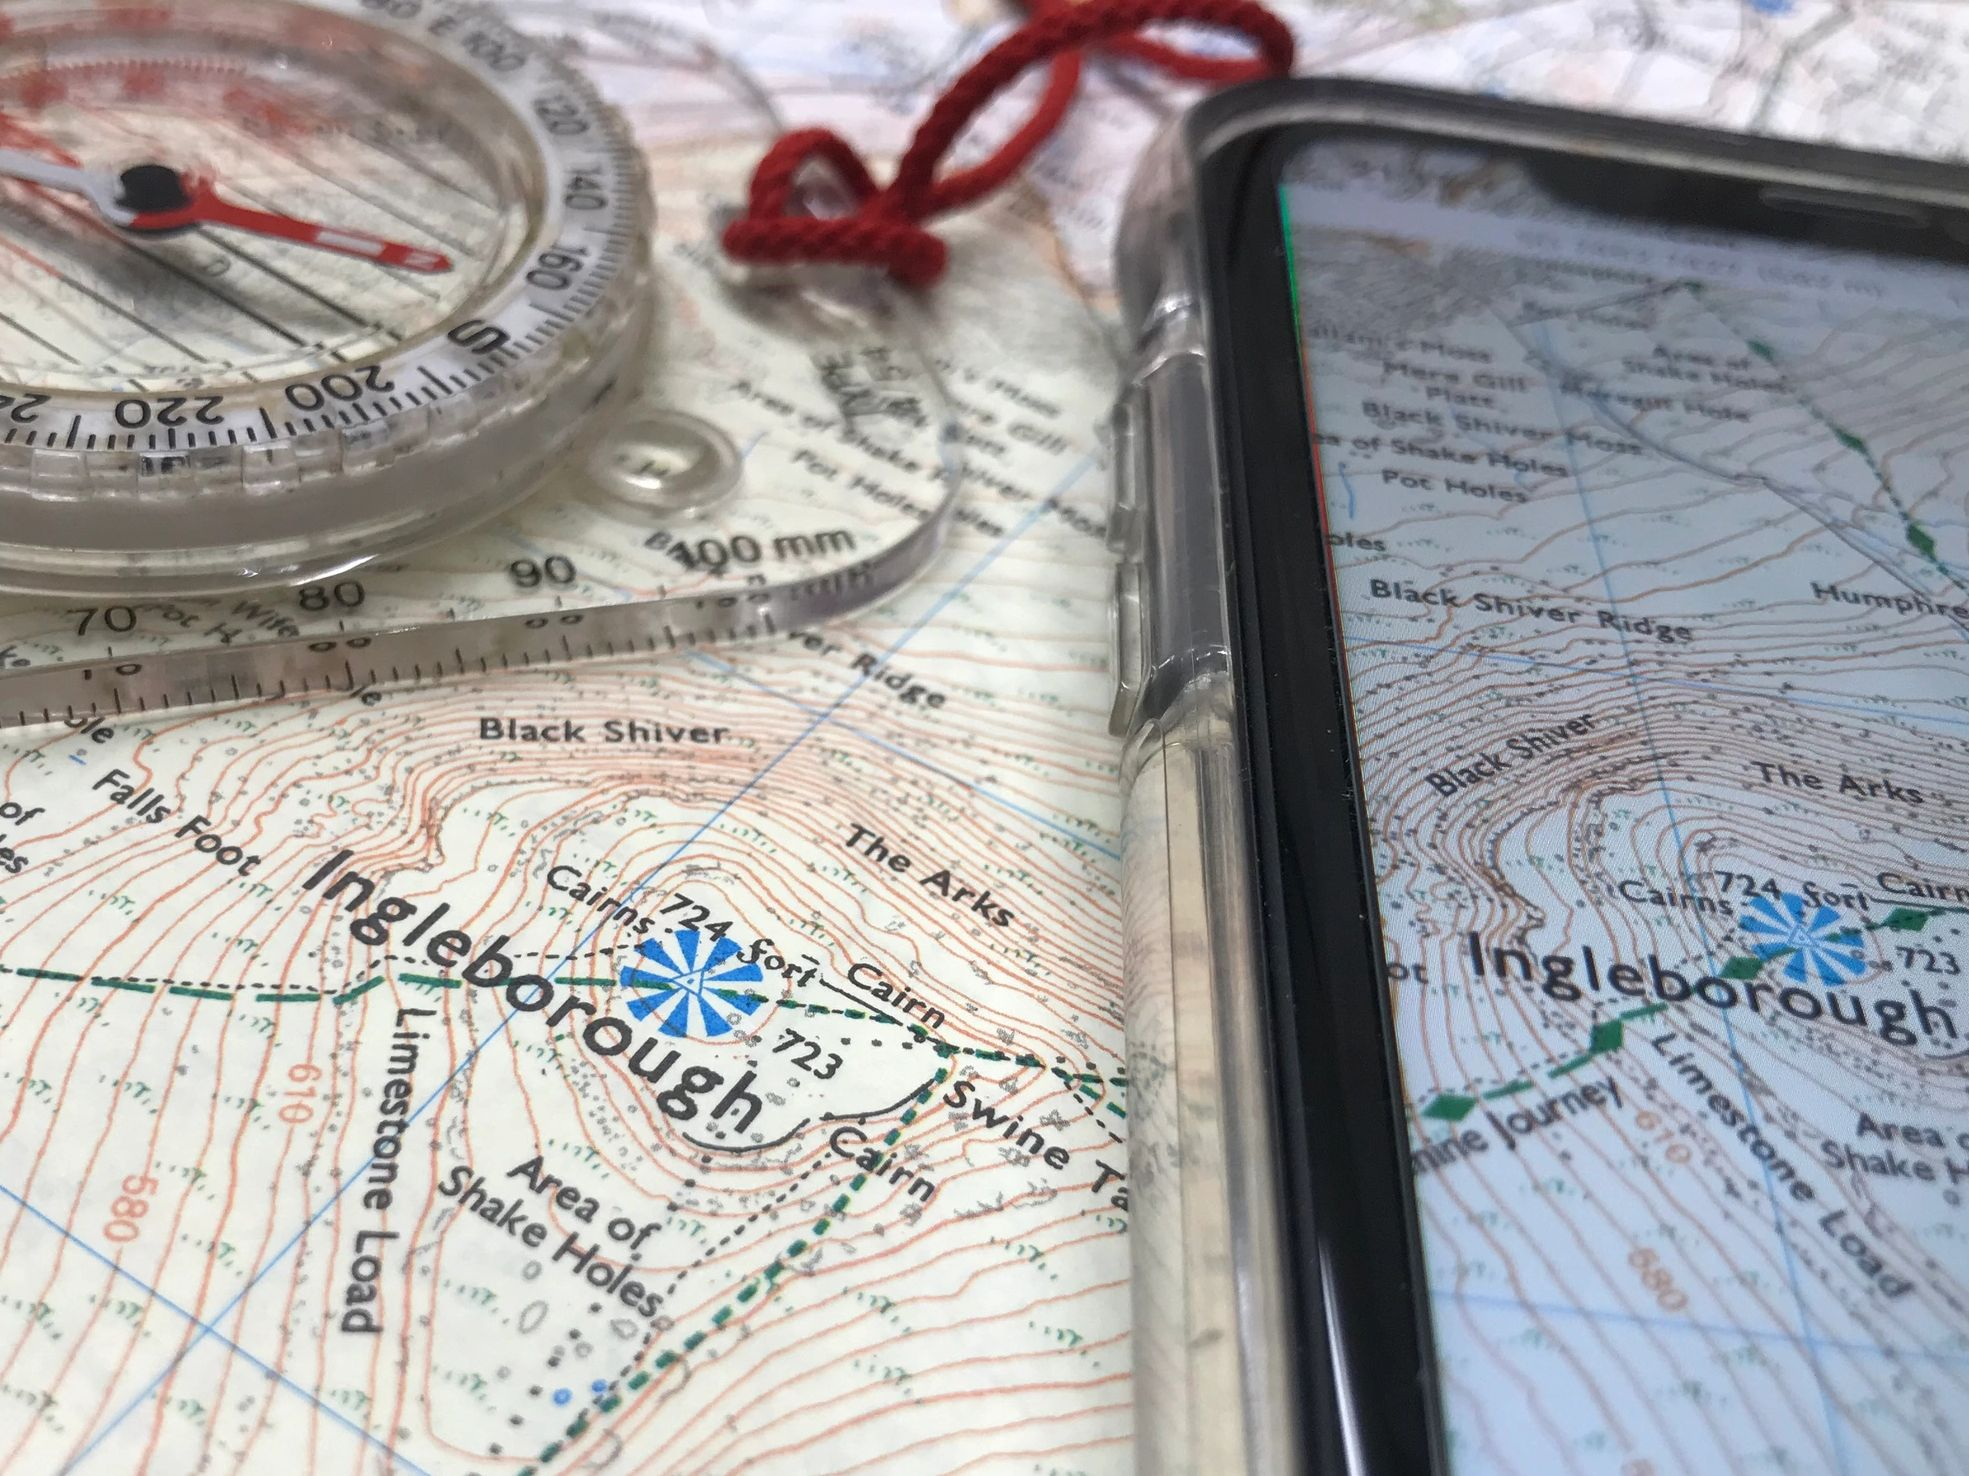 Map and compass with mapping and navigation software on a smart phone